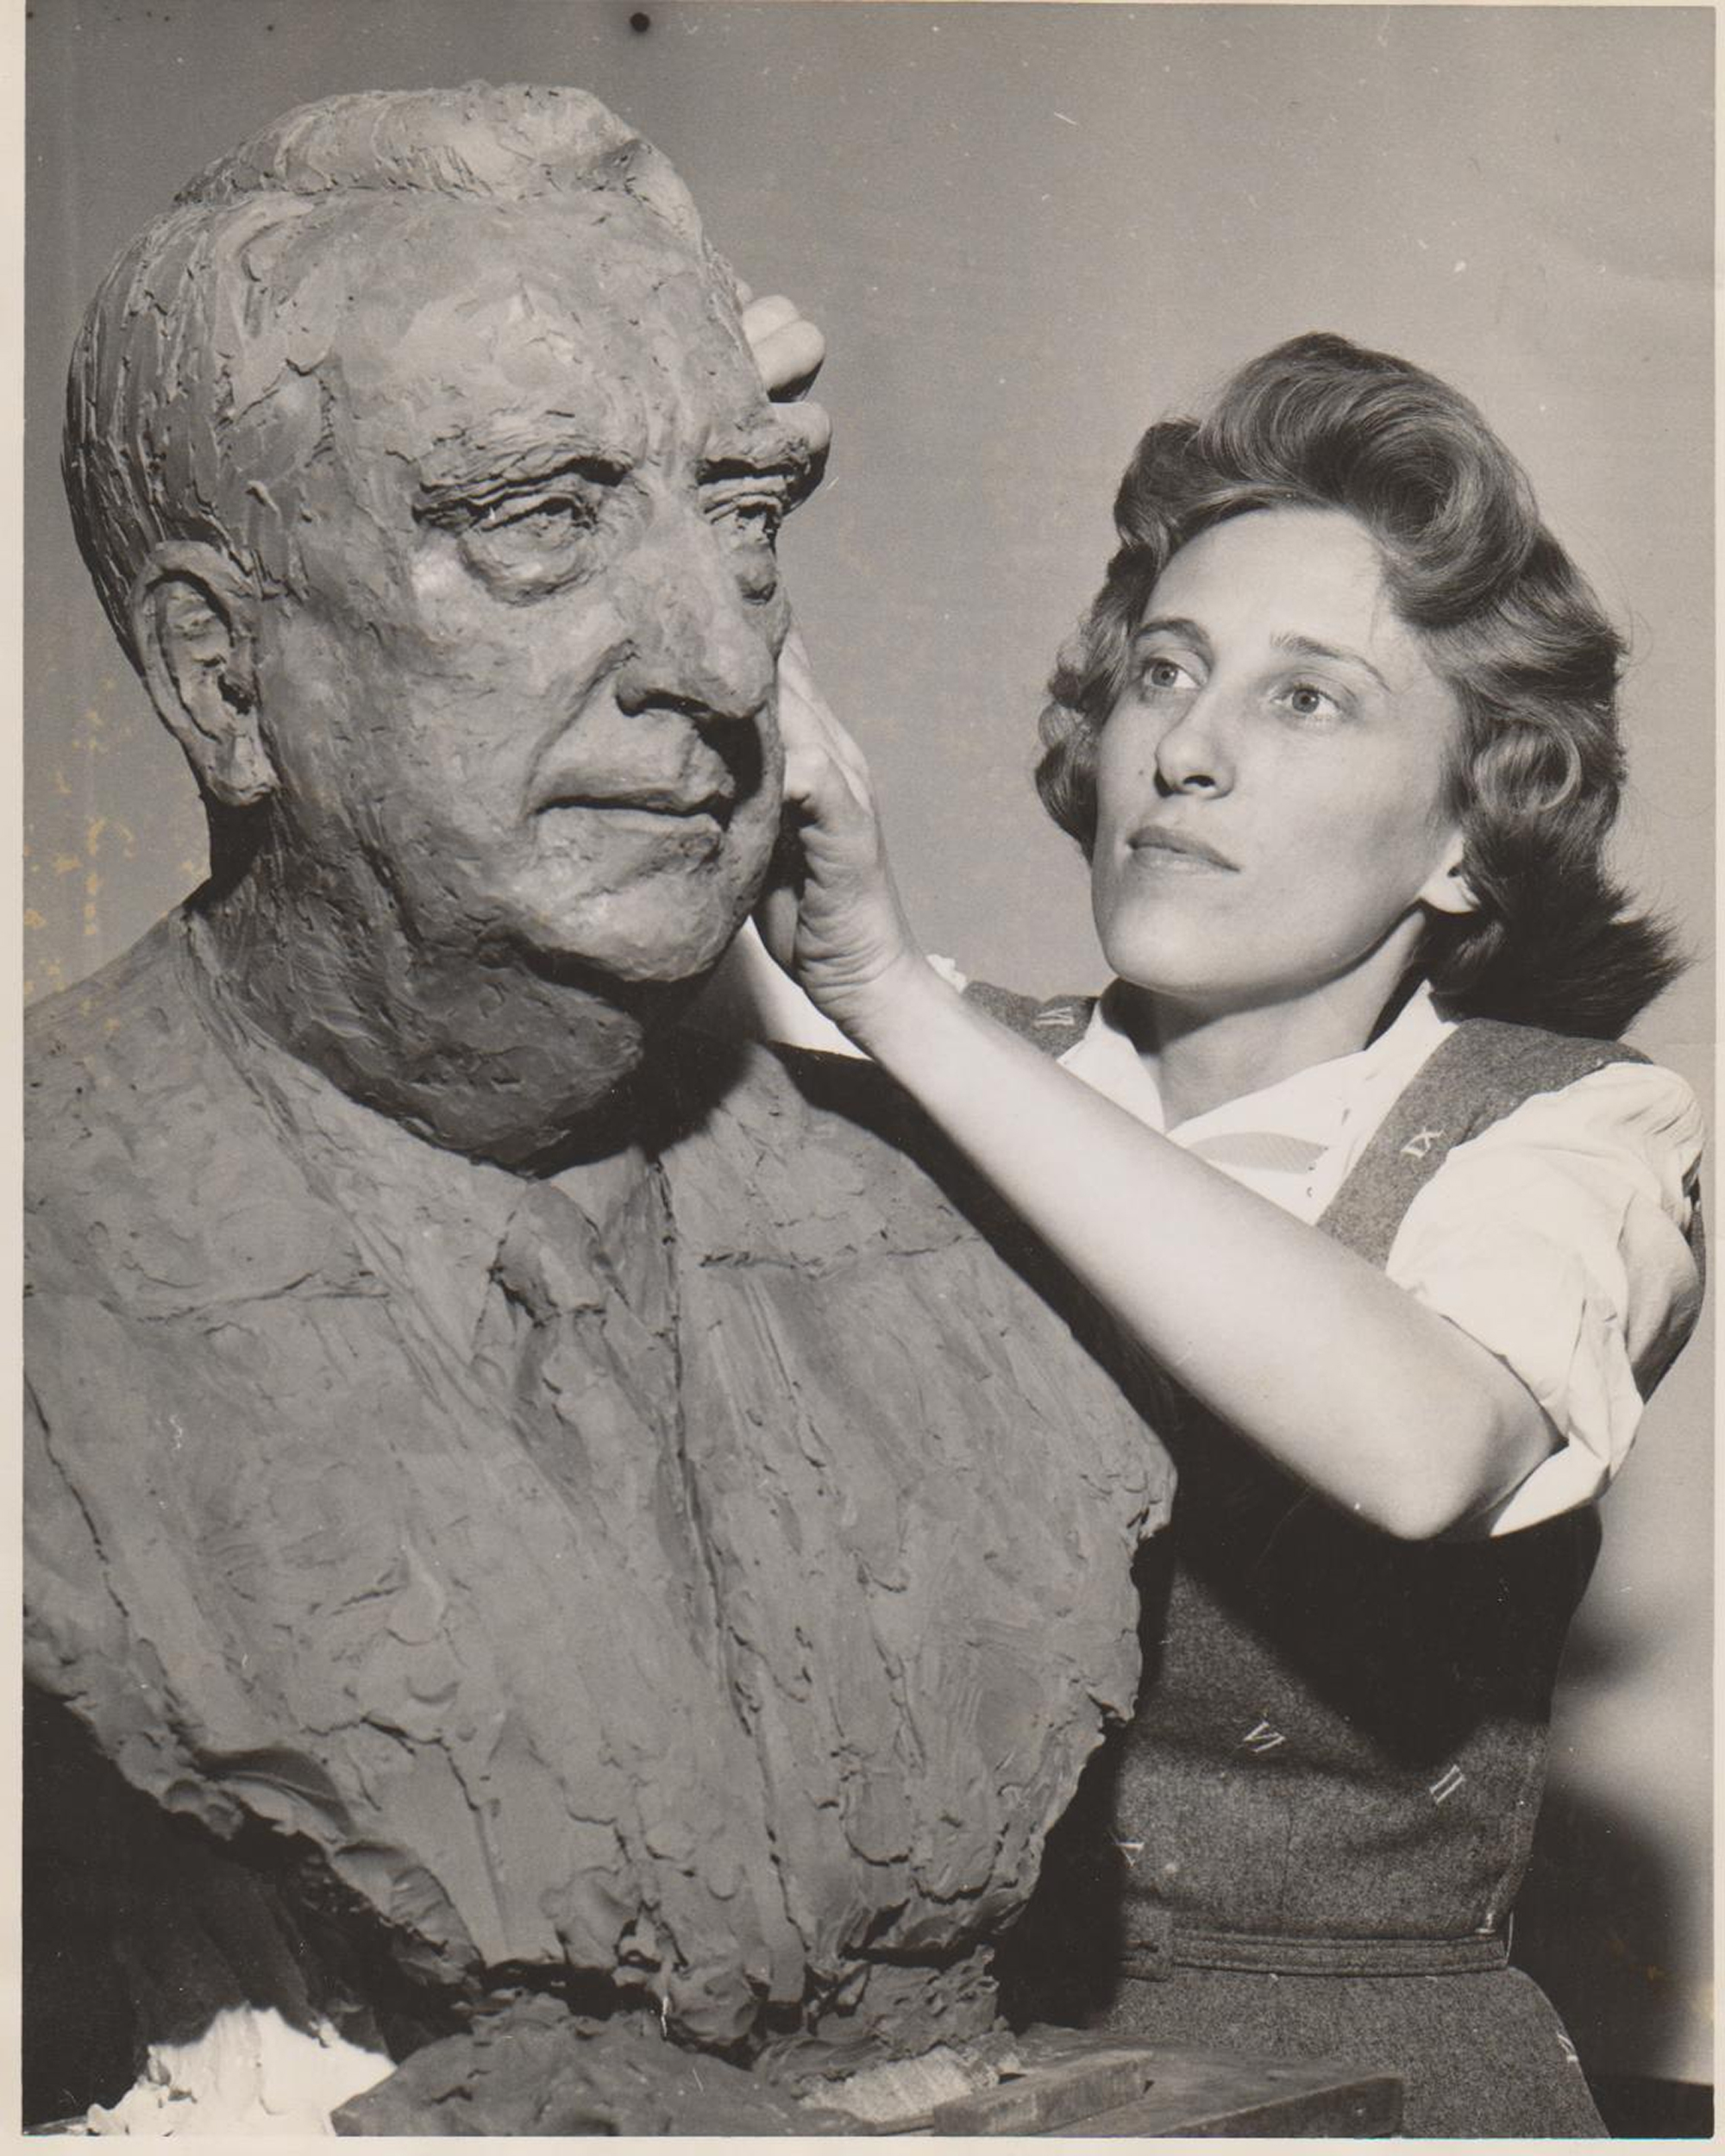 Jimilu Mason working on the bust of U.S. Chief Justice Frederick M. Vinson.